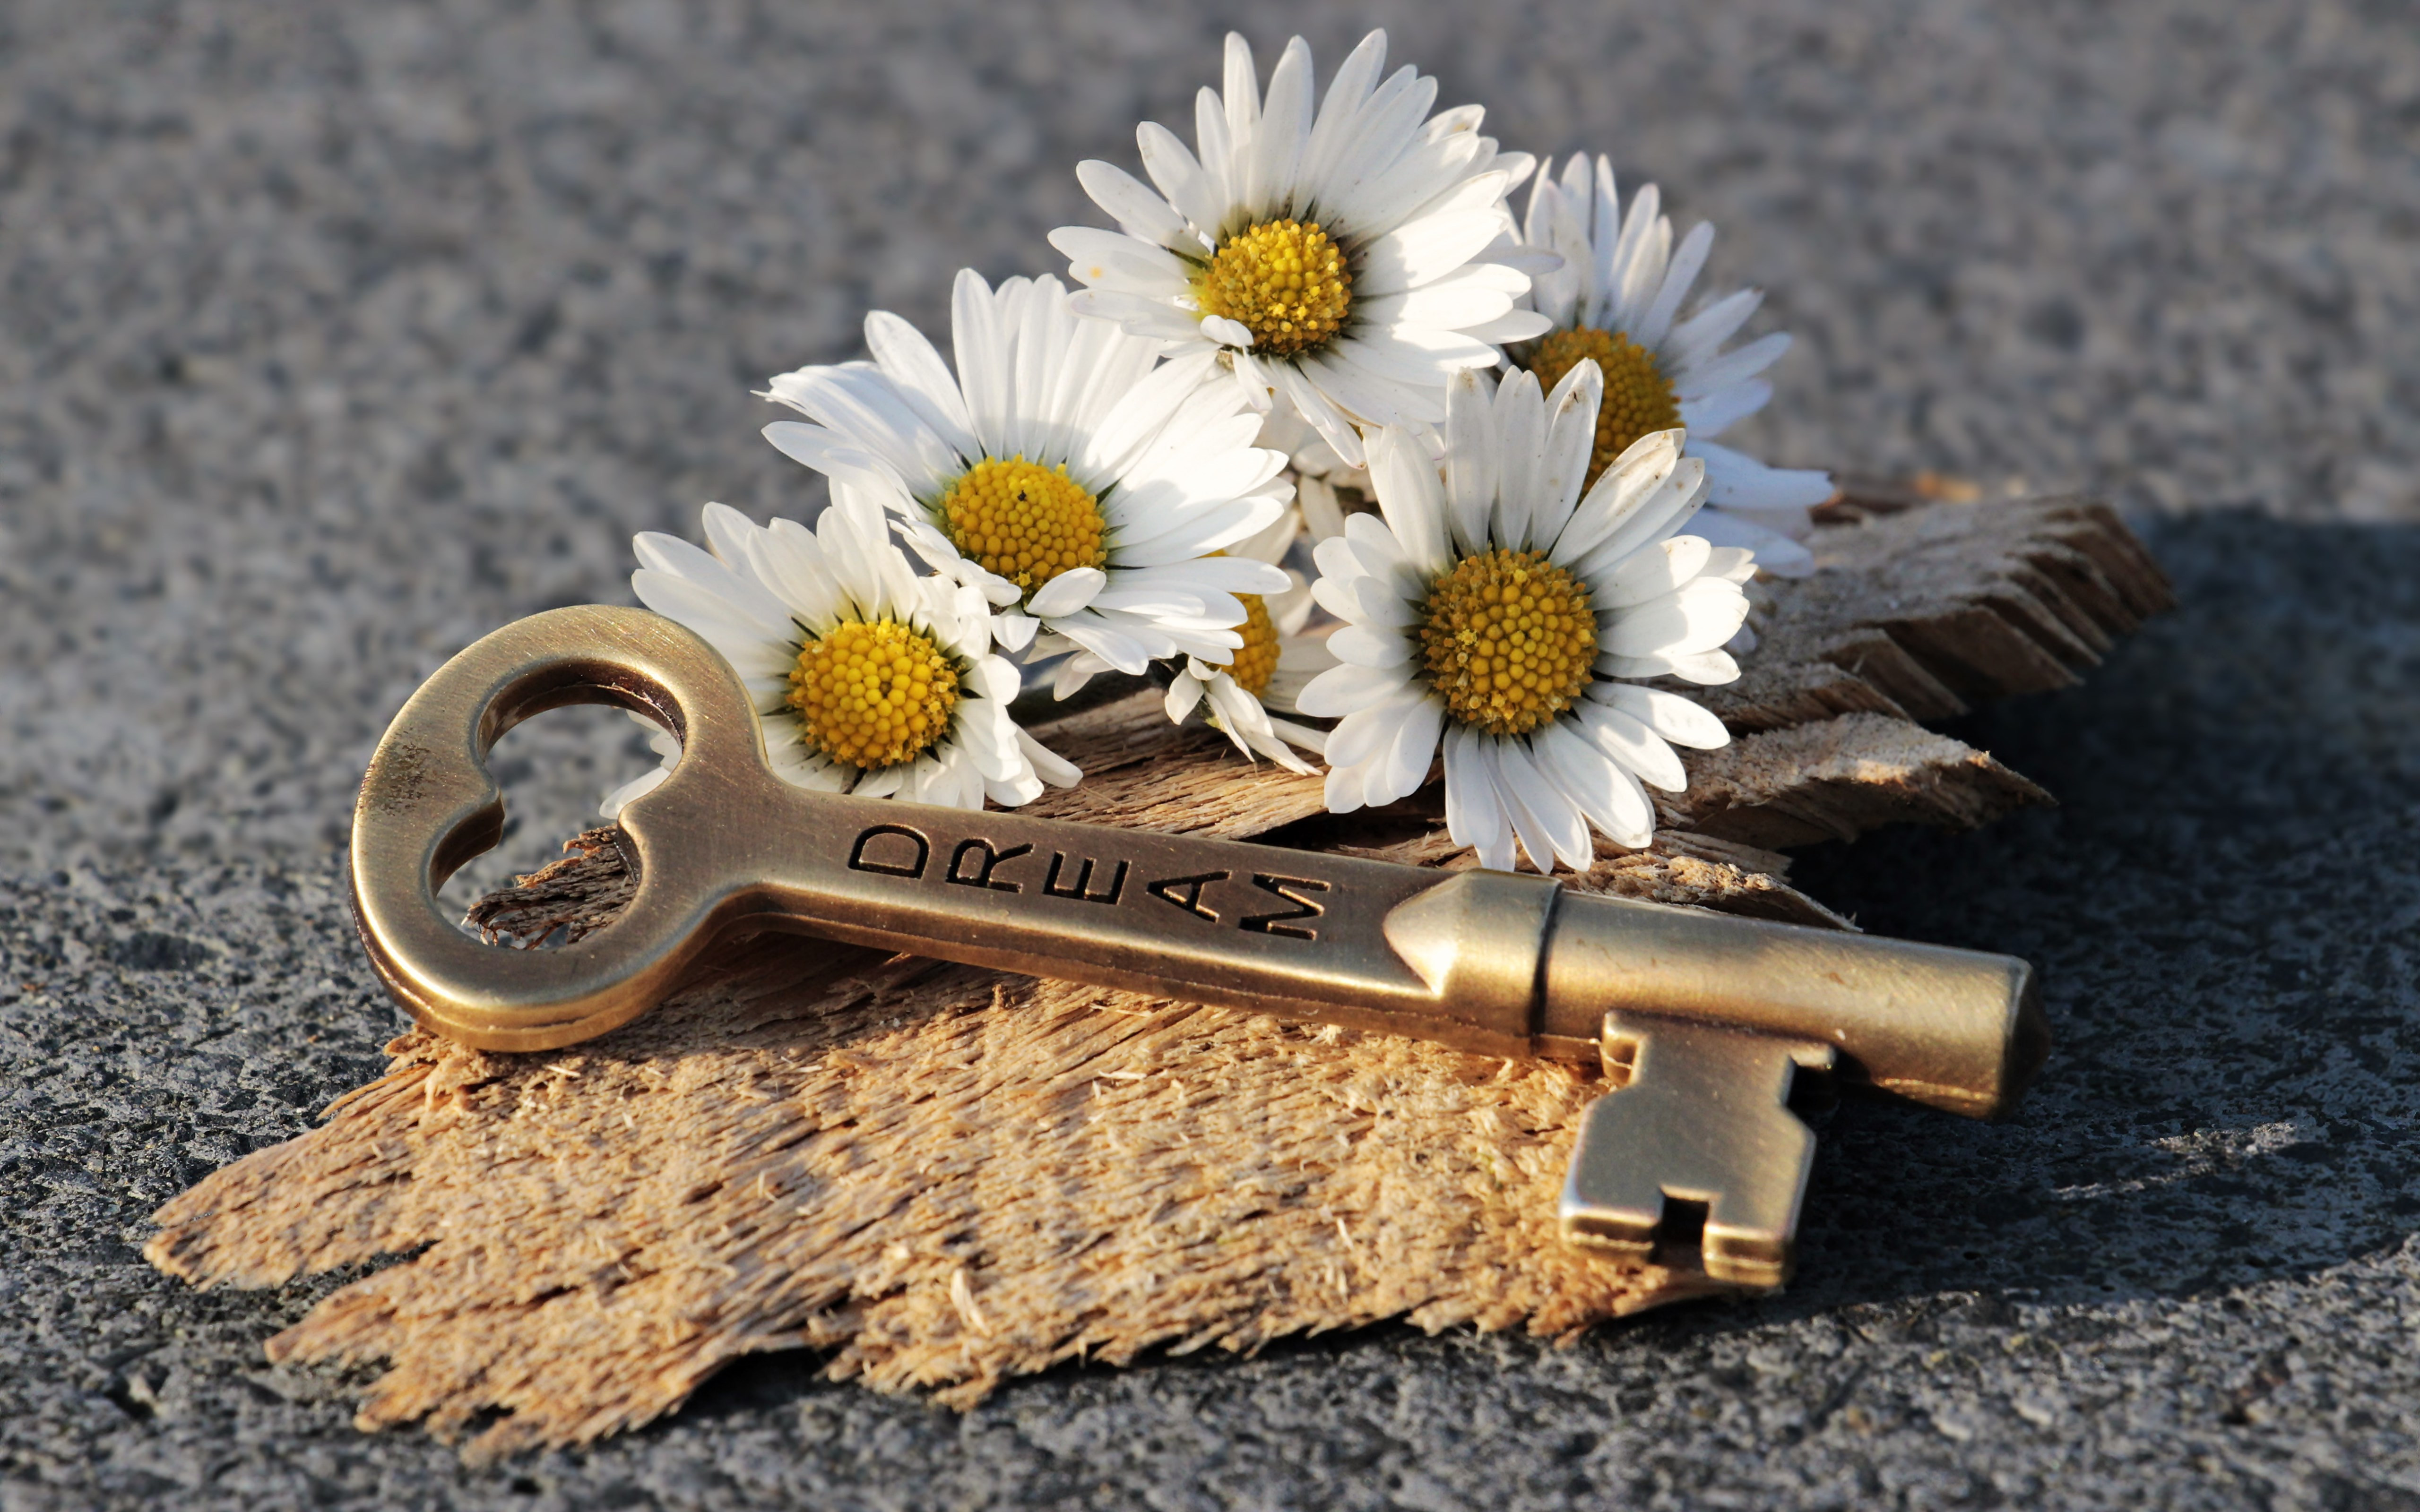 The dreams key and daisy flowers wallpaper 5120x3200